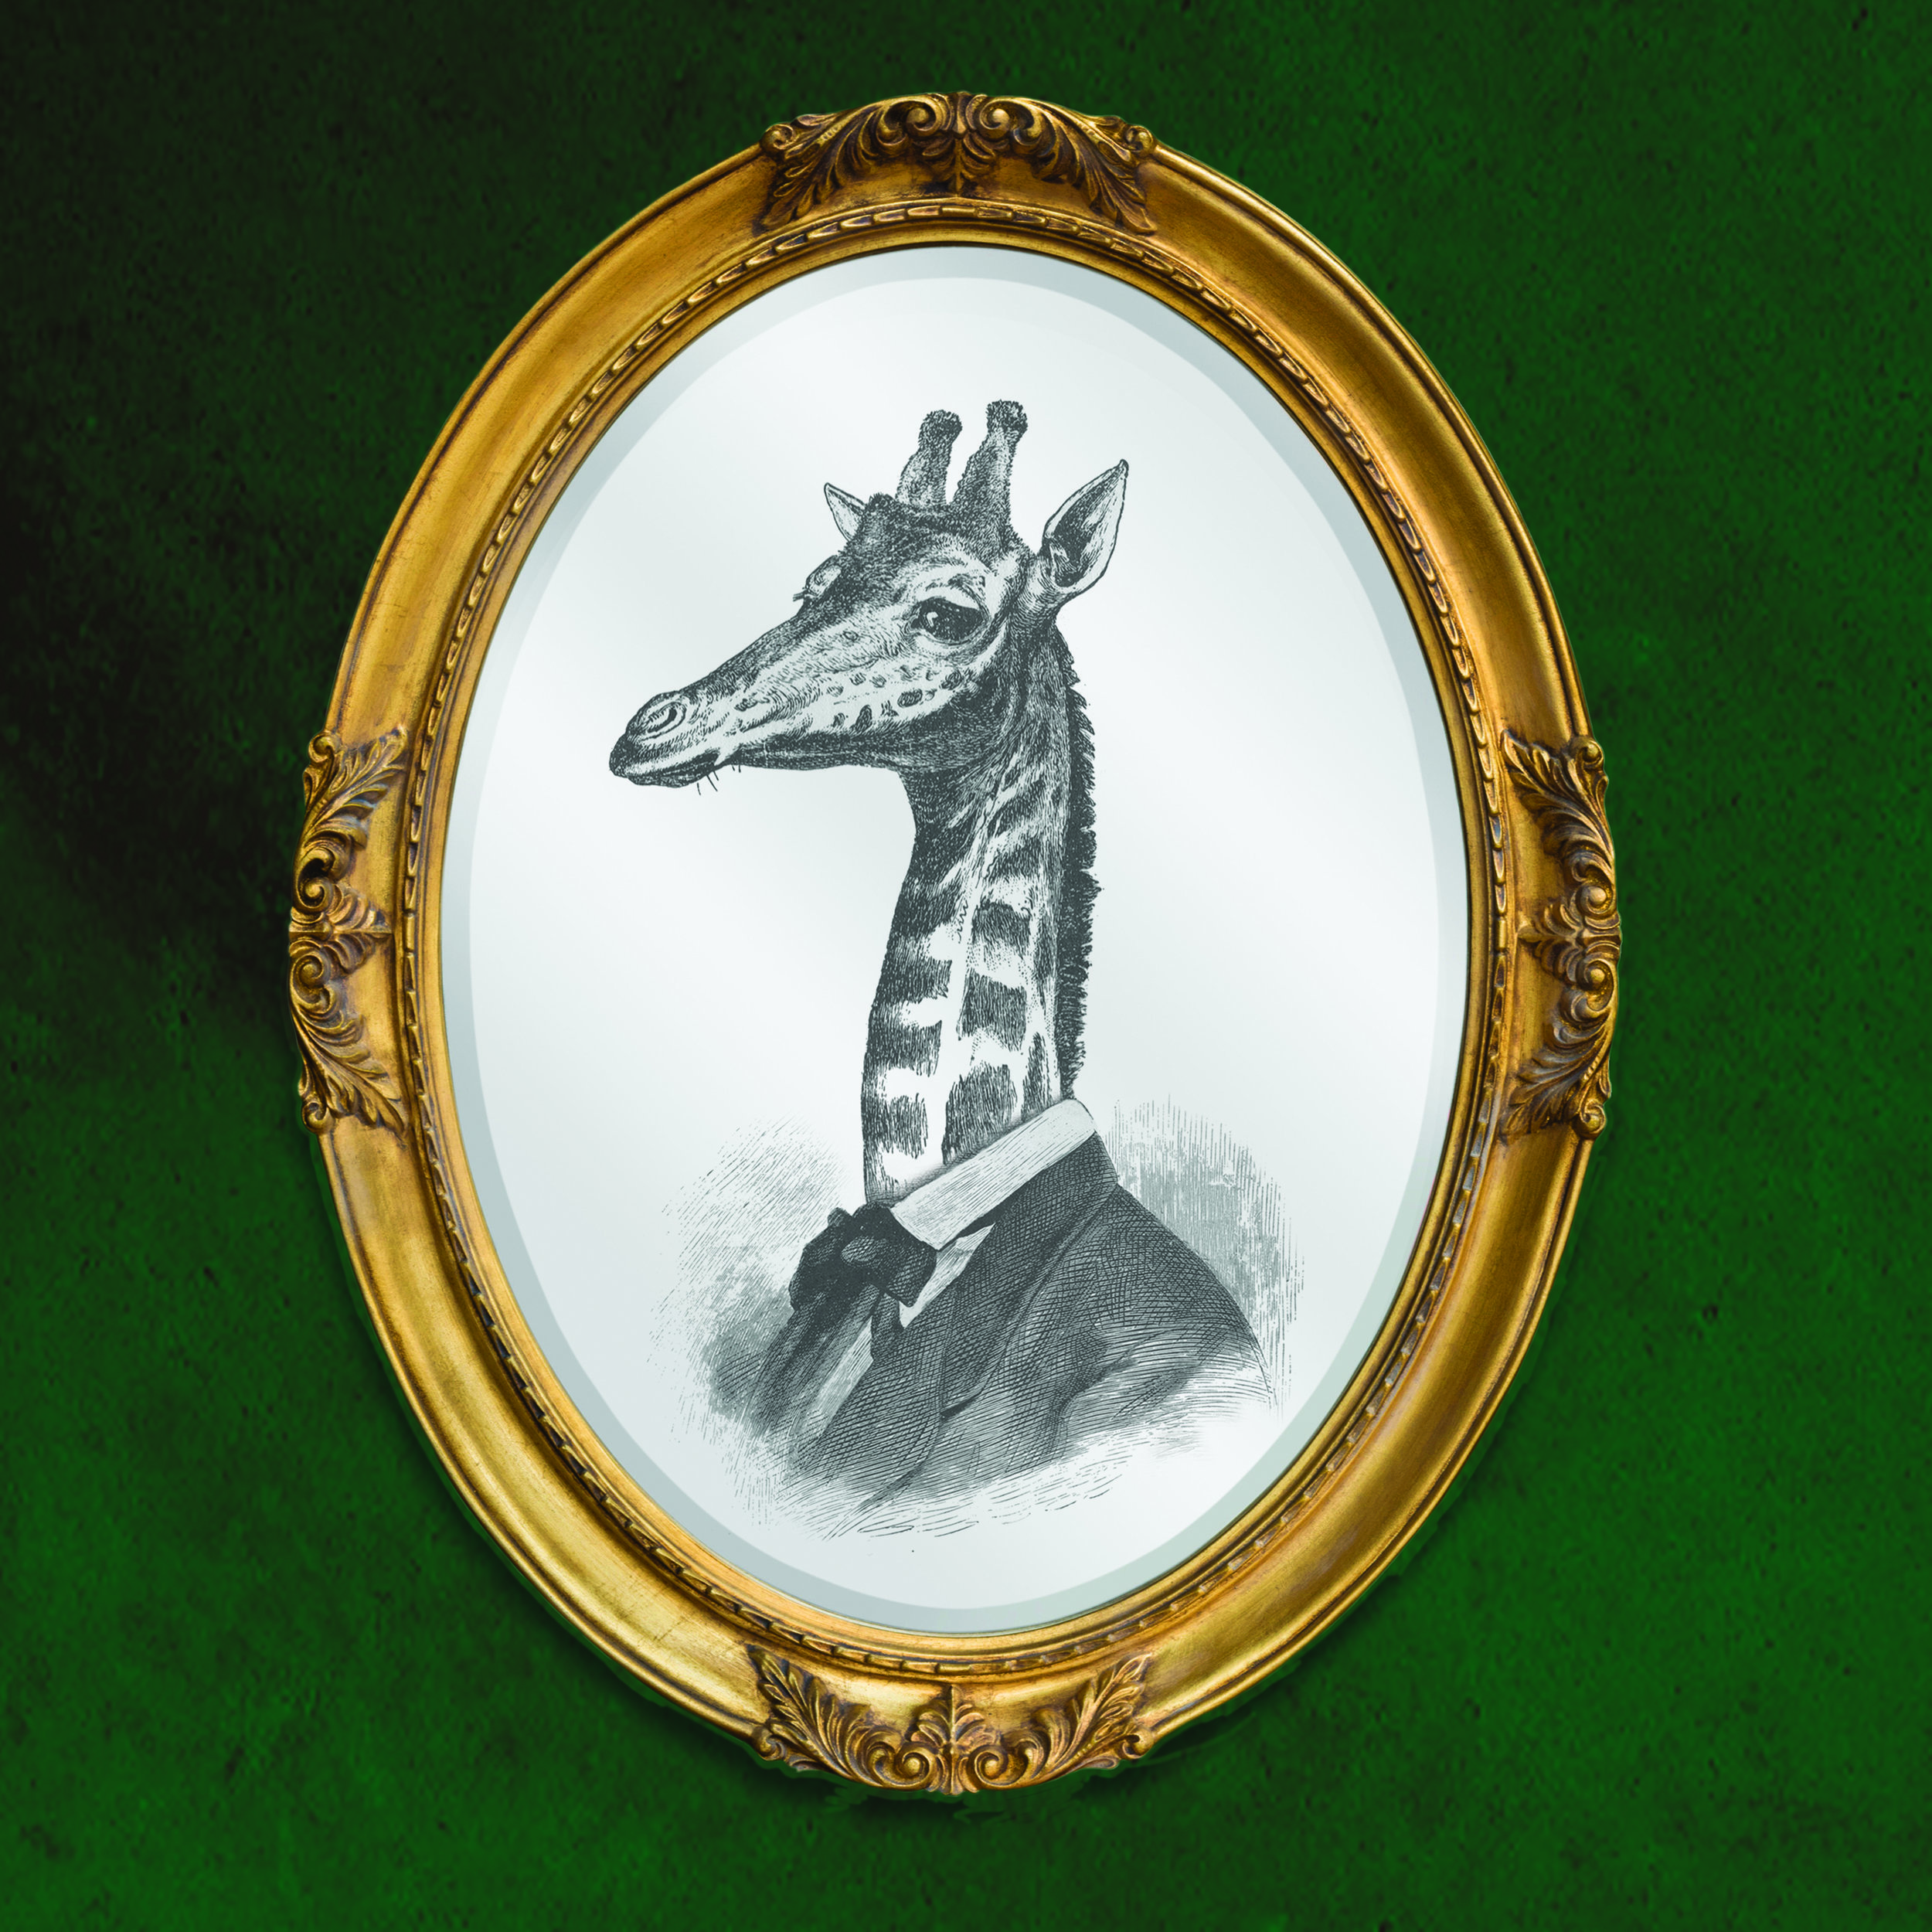 The Giraffe- Signed and numbered edition of 100